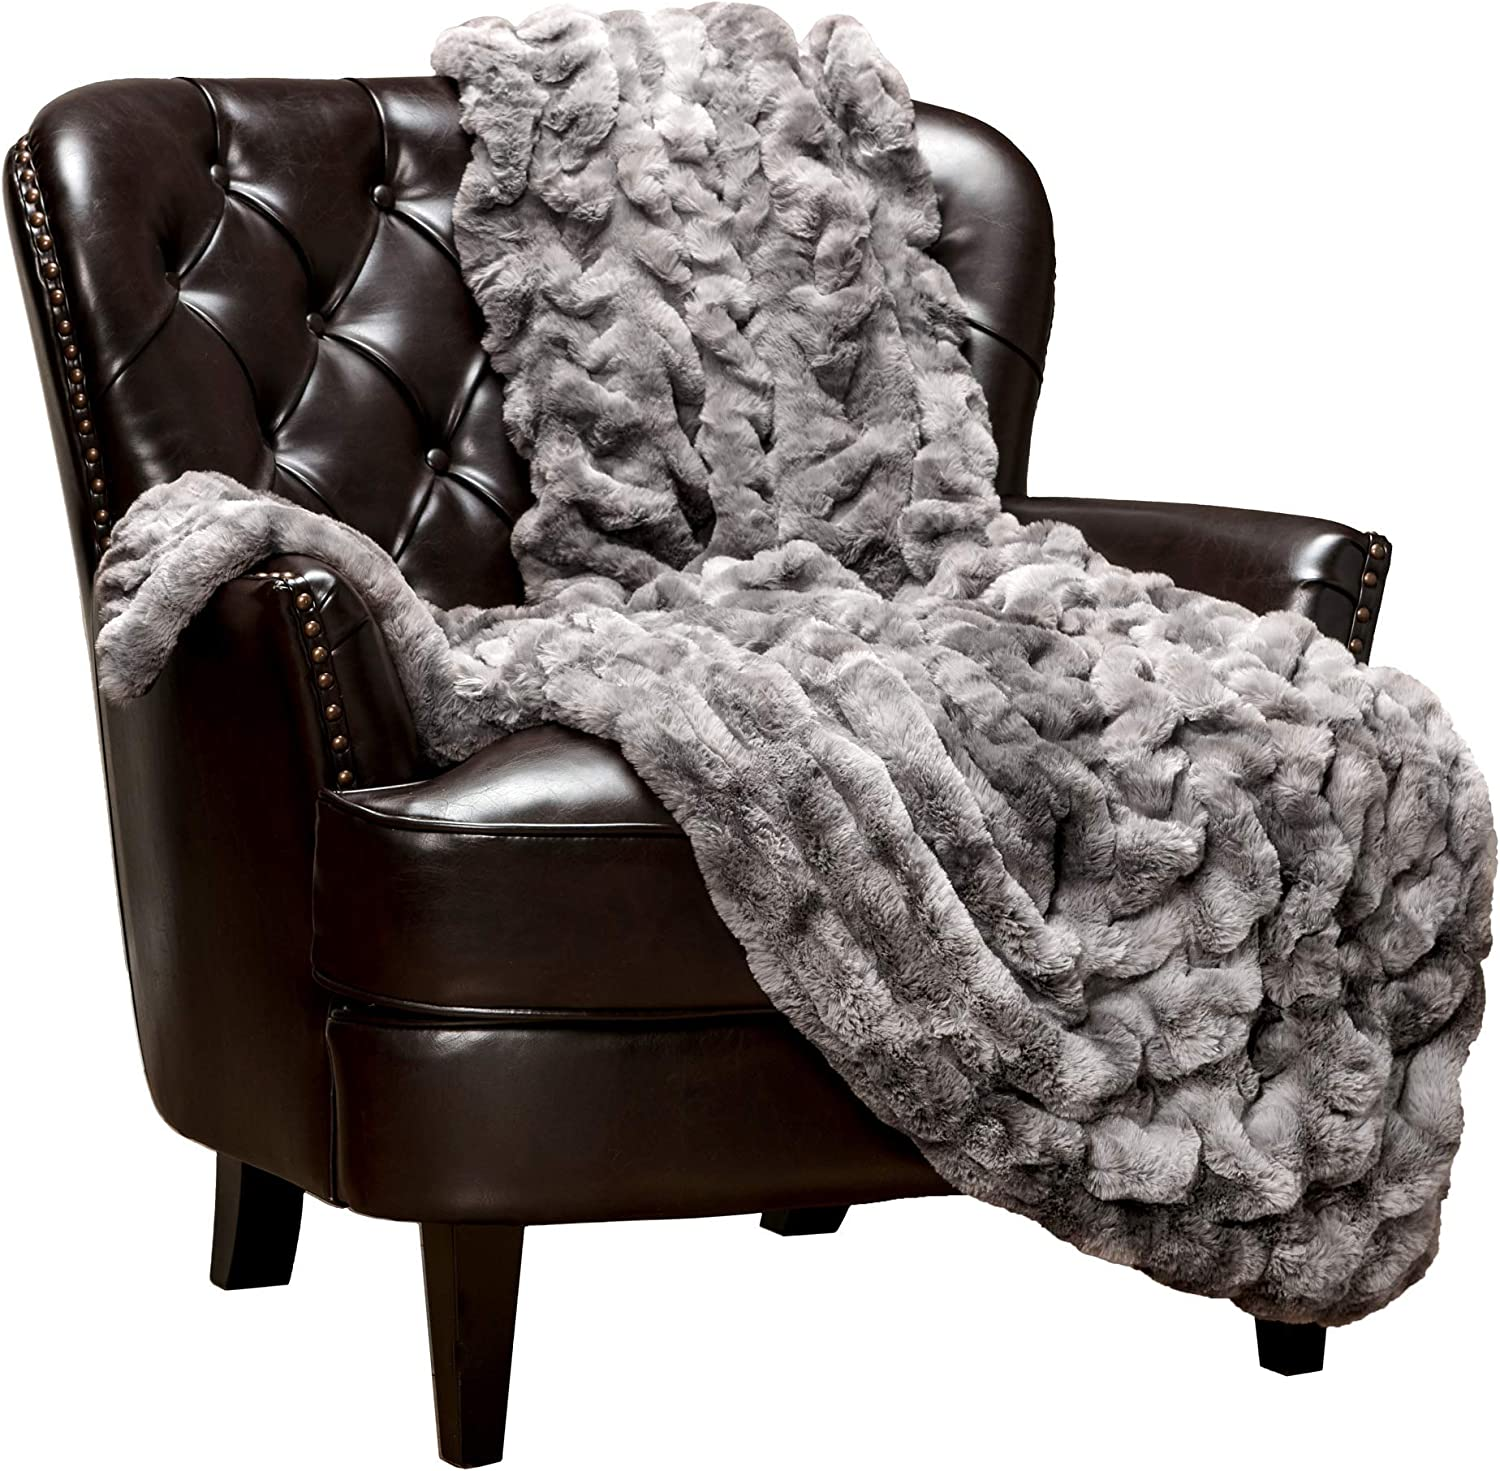 Chanasya Cozy Ruched Royal Luxurious Faux Fur Throw Blanket for Couch Chair Bed